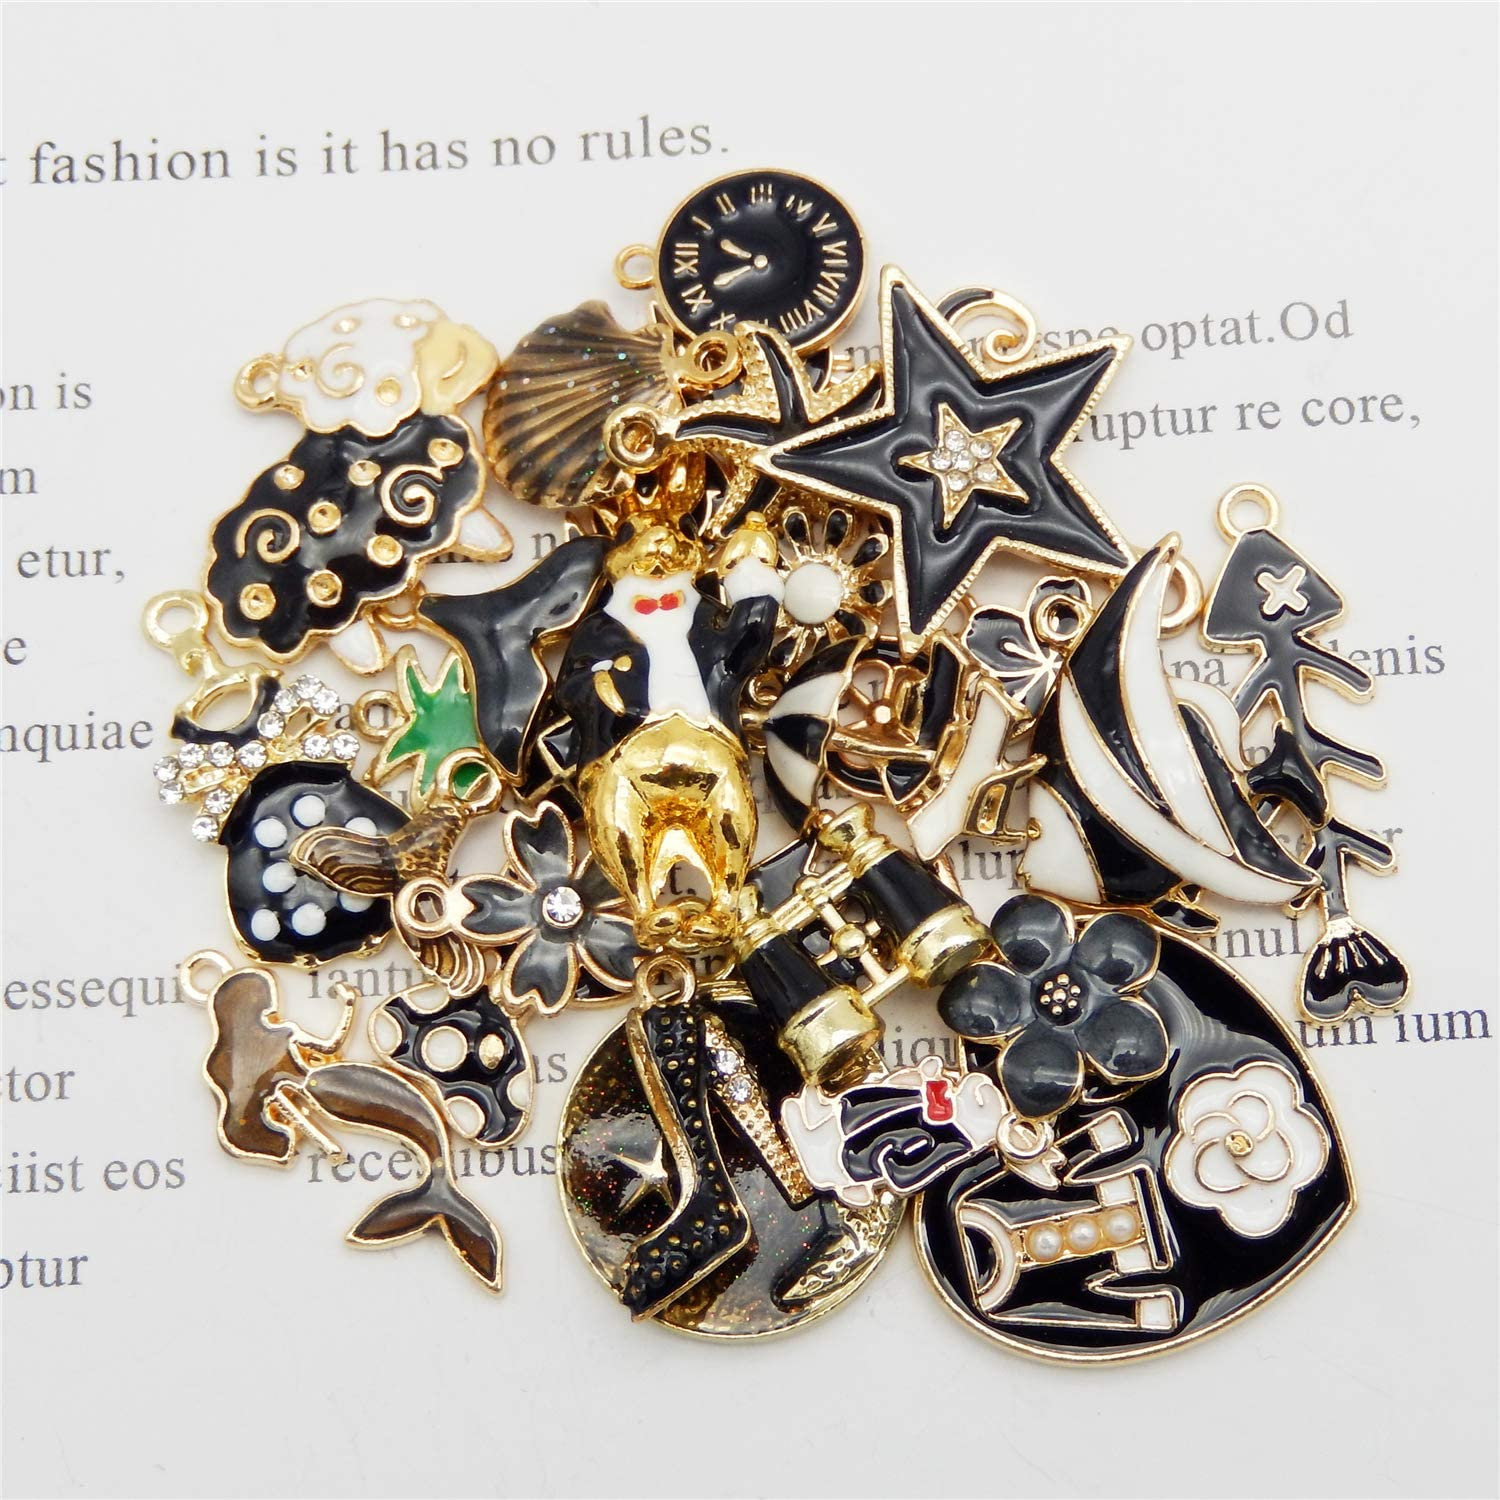 30pcs Mixed Enamel Black Theme Charms Pendants for Jewelry Making Bulk lot Necklace Earrings Bracelet Craft Findings